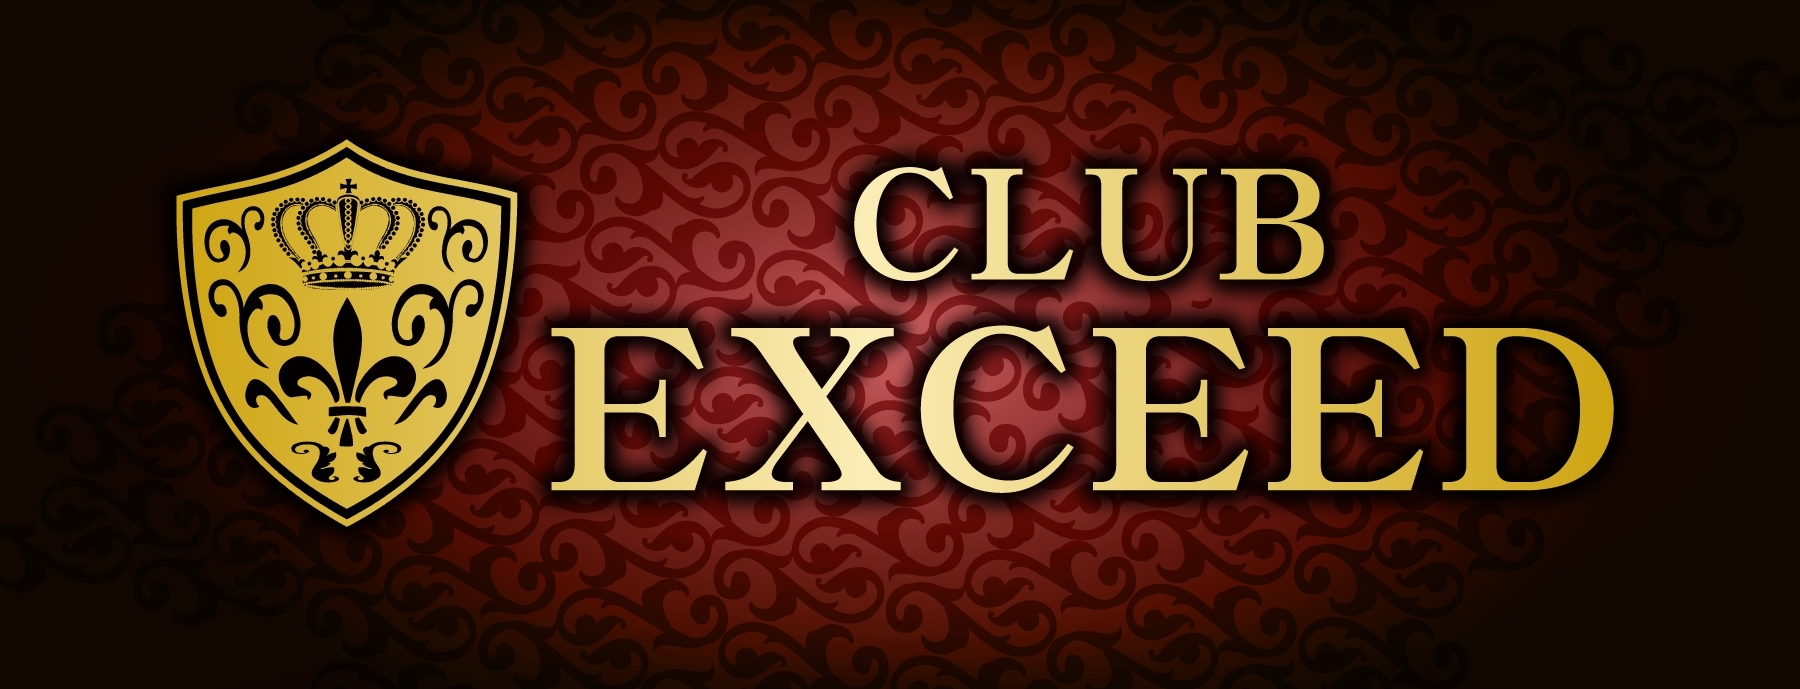 CLUB EXCEED